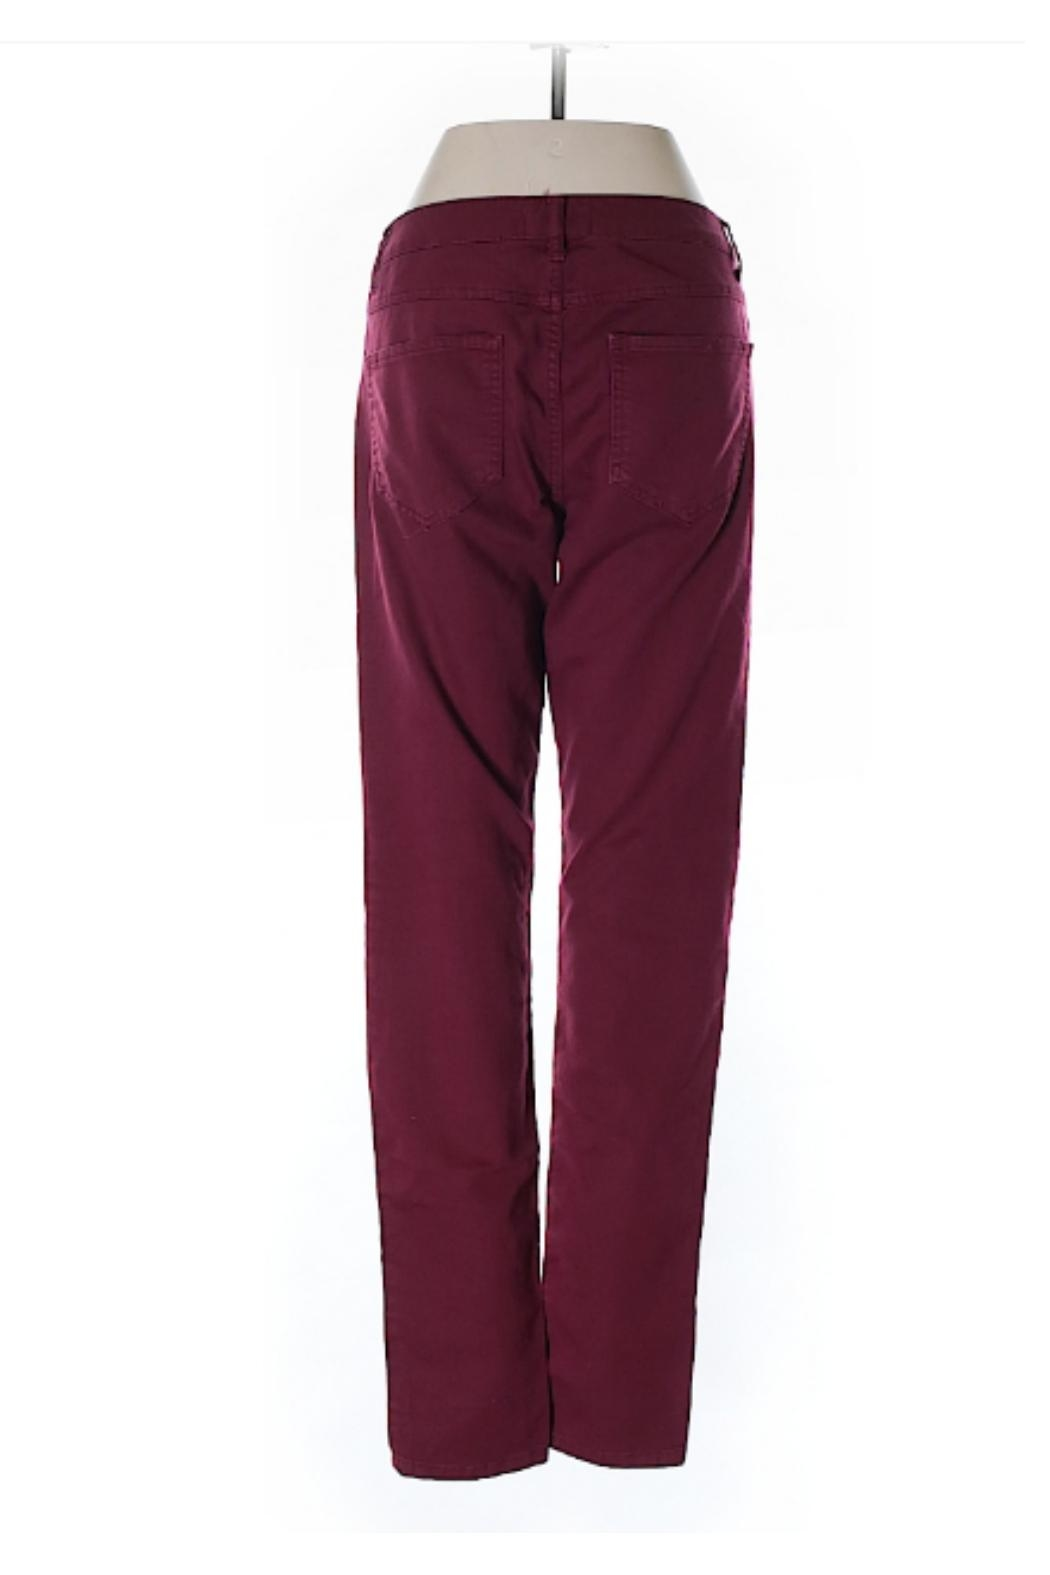 Scarlet Boulevard Casual-Pants - Front Full Image